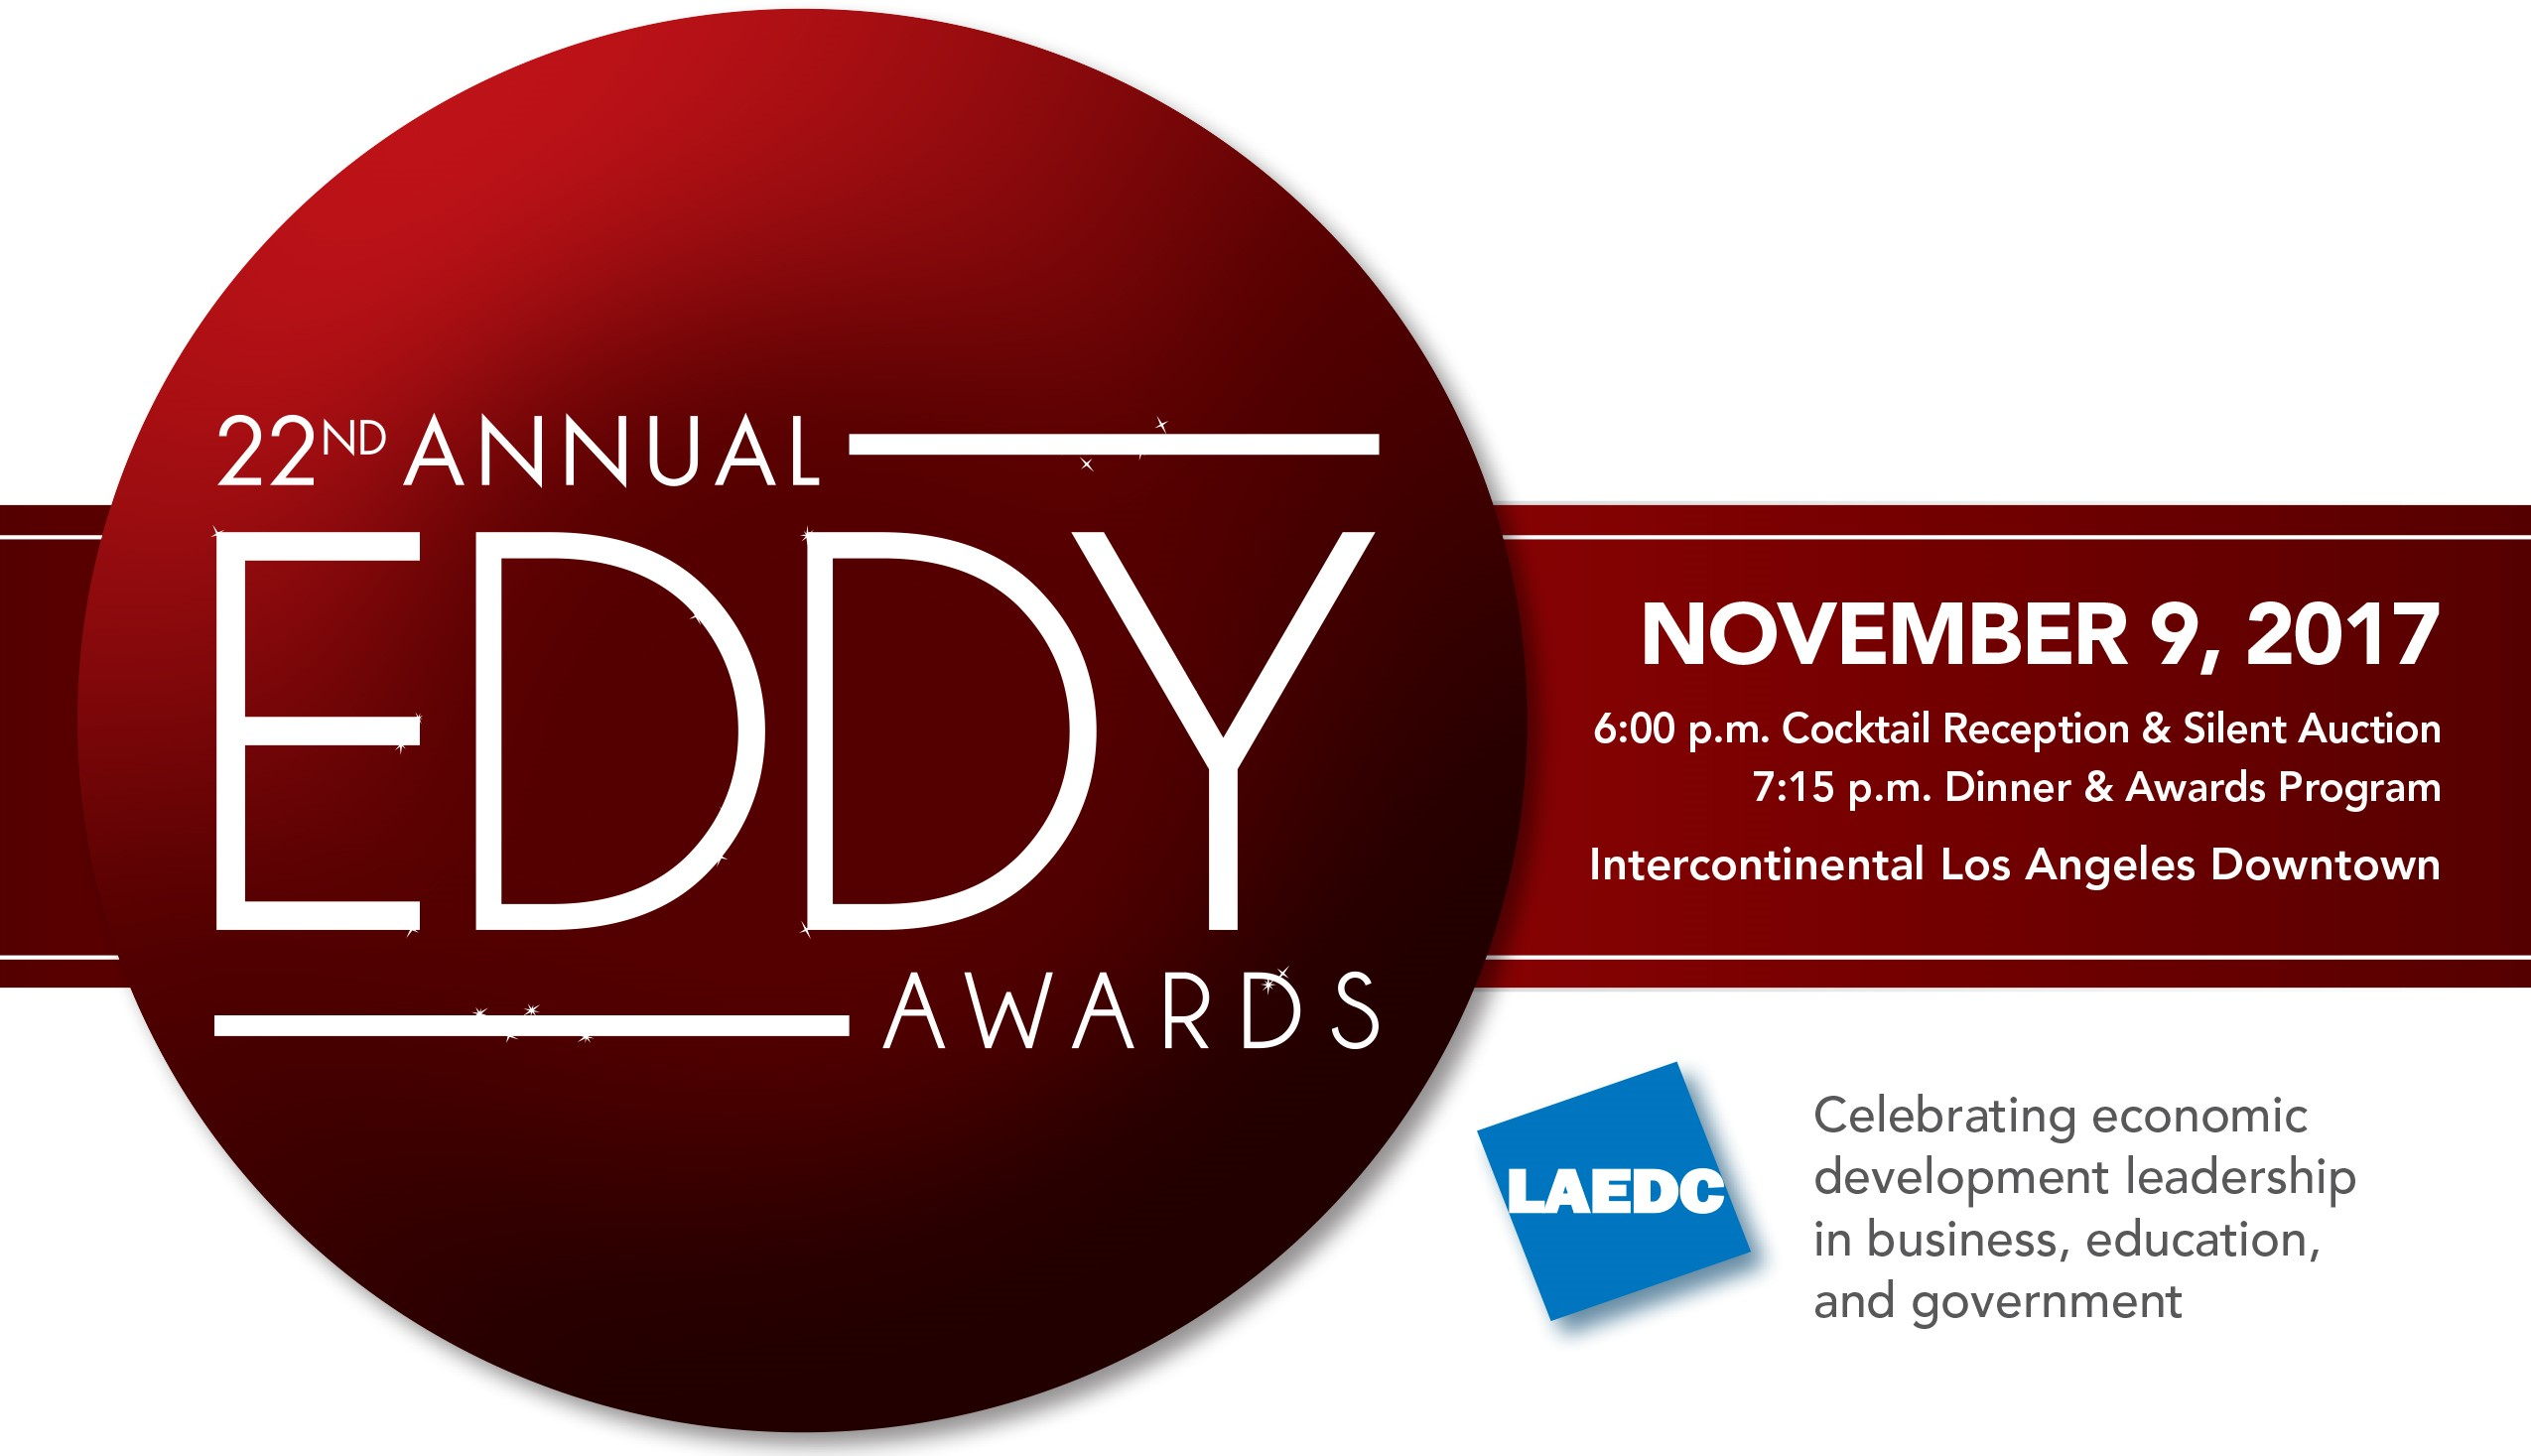 22nd Annual Eddy Awards